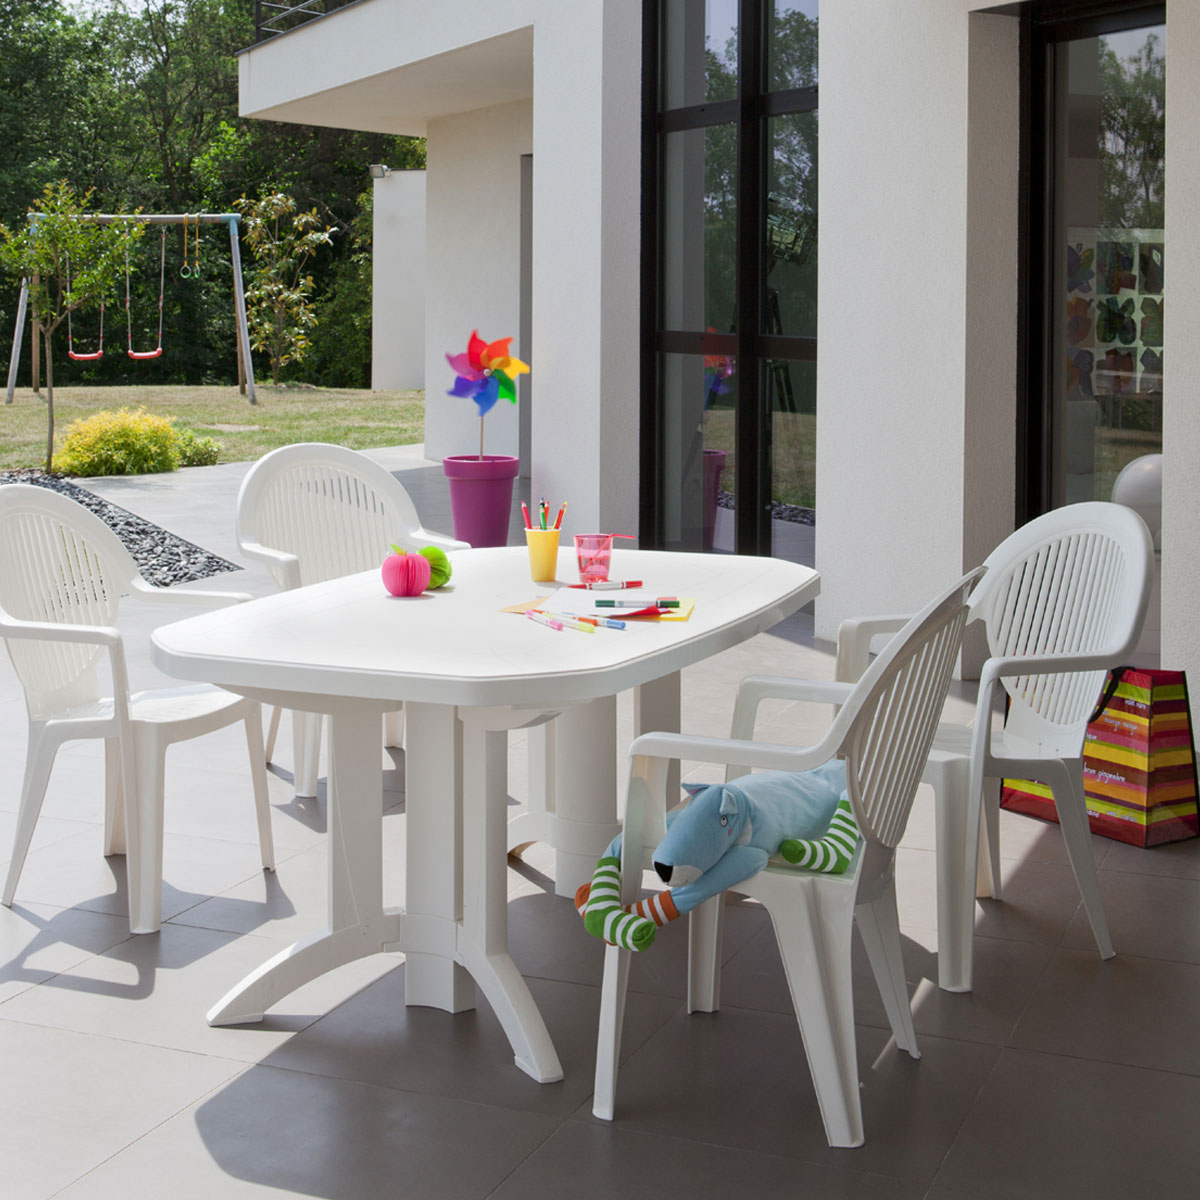 Emejing table de jardin grosfillex pliable pictures awesome interior home satellite Table de jardin pliable cdiscount